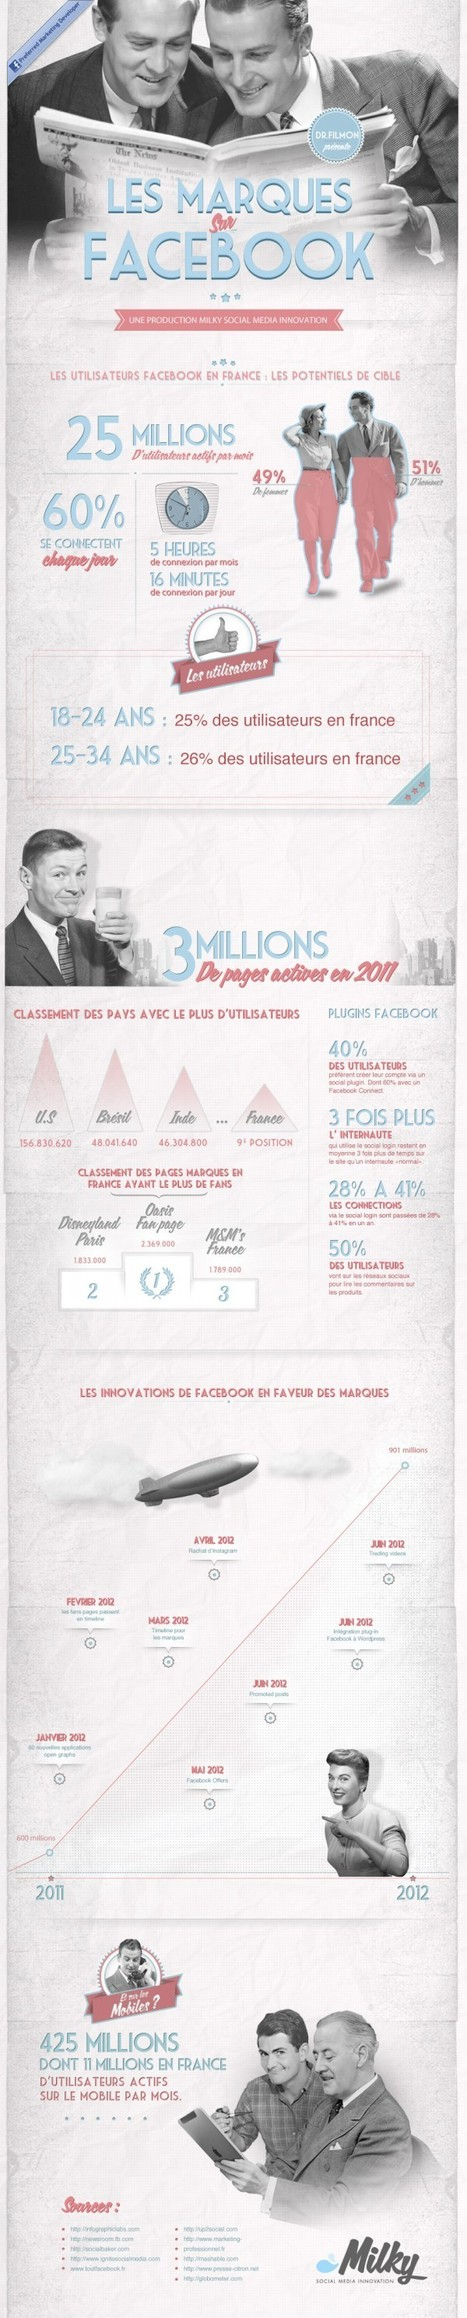 Infographie : Les marques s'affichent sur Facebook | Marketing et vin | Scoop.it